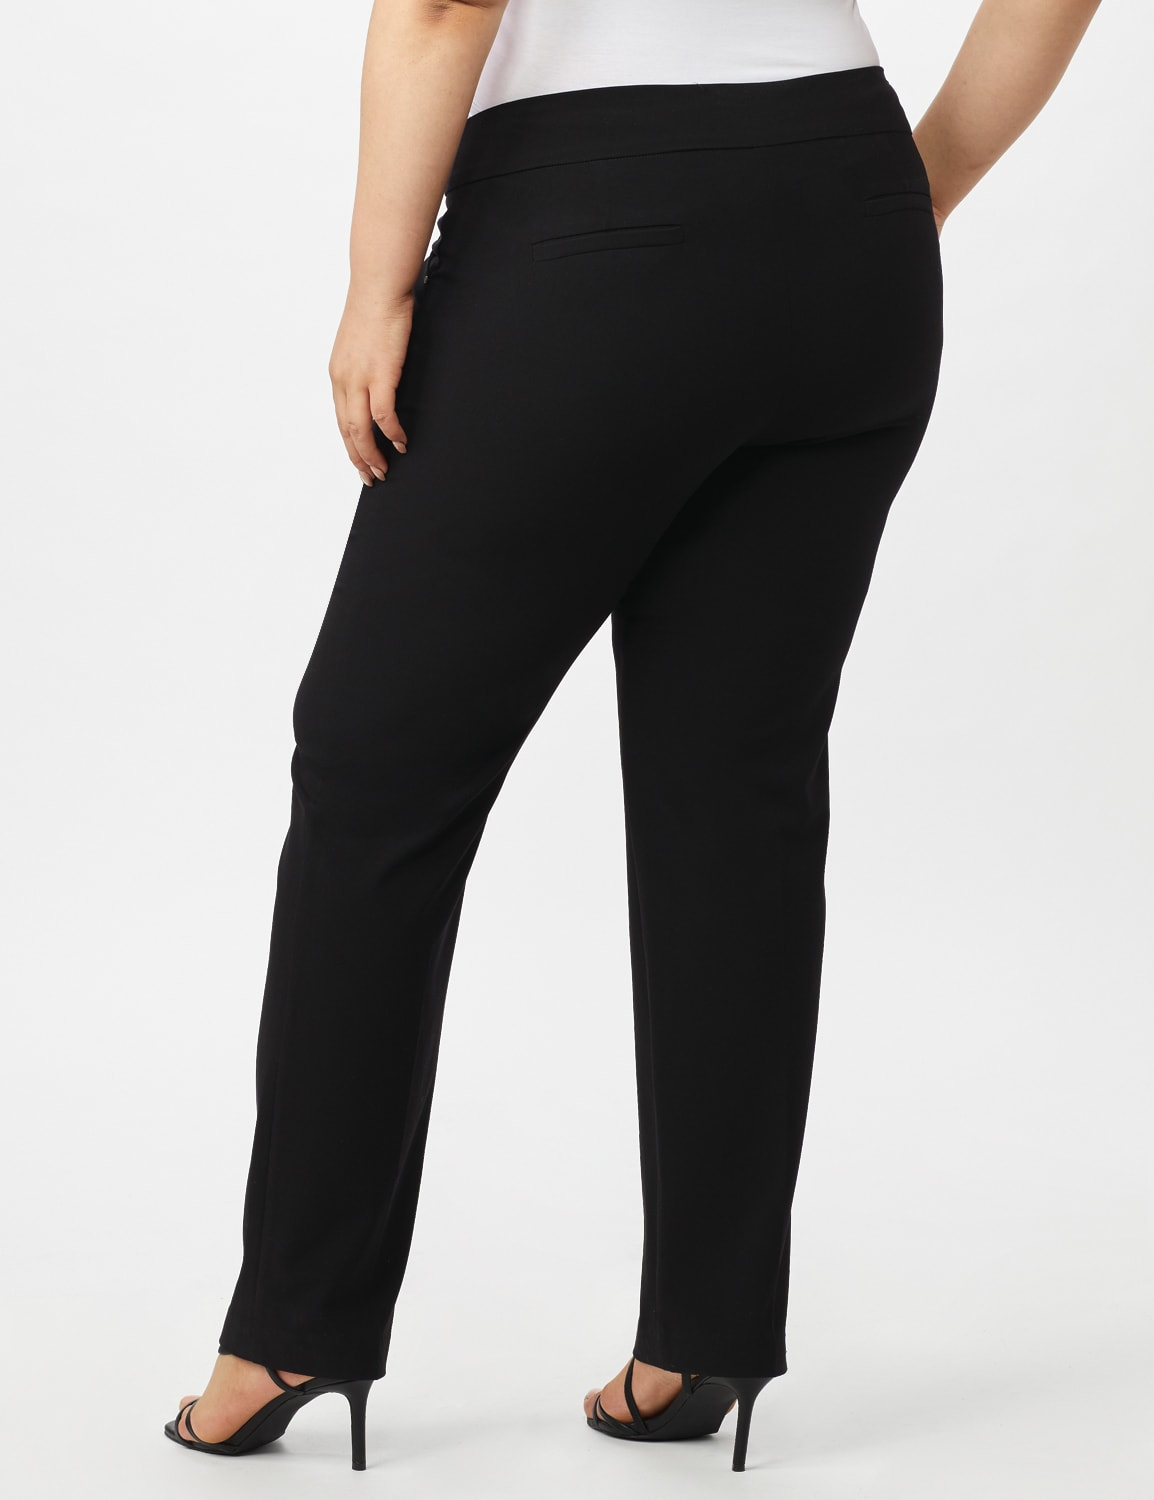 Roz & Ali Plus Secret Agent Tummy Control Pants Cateye Rivets - Average Length - Plus - Black - Back